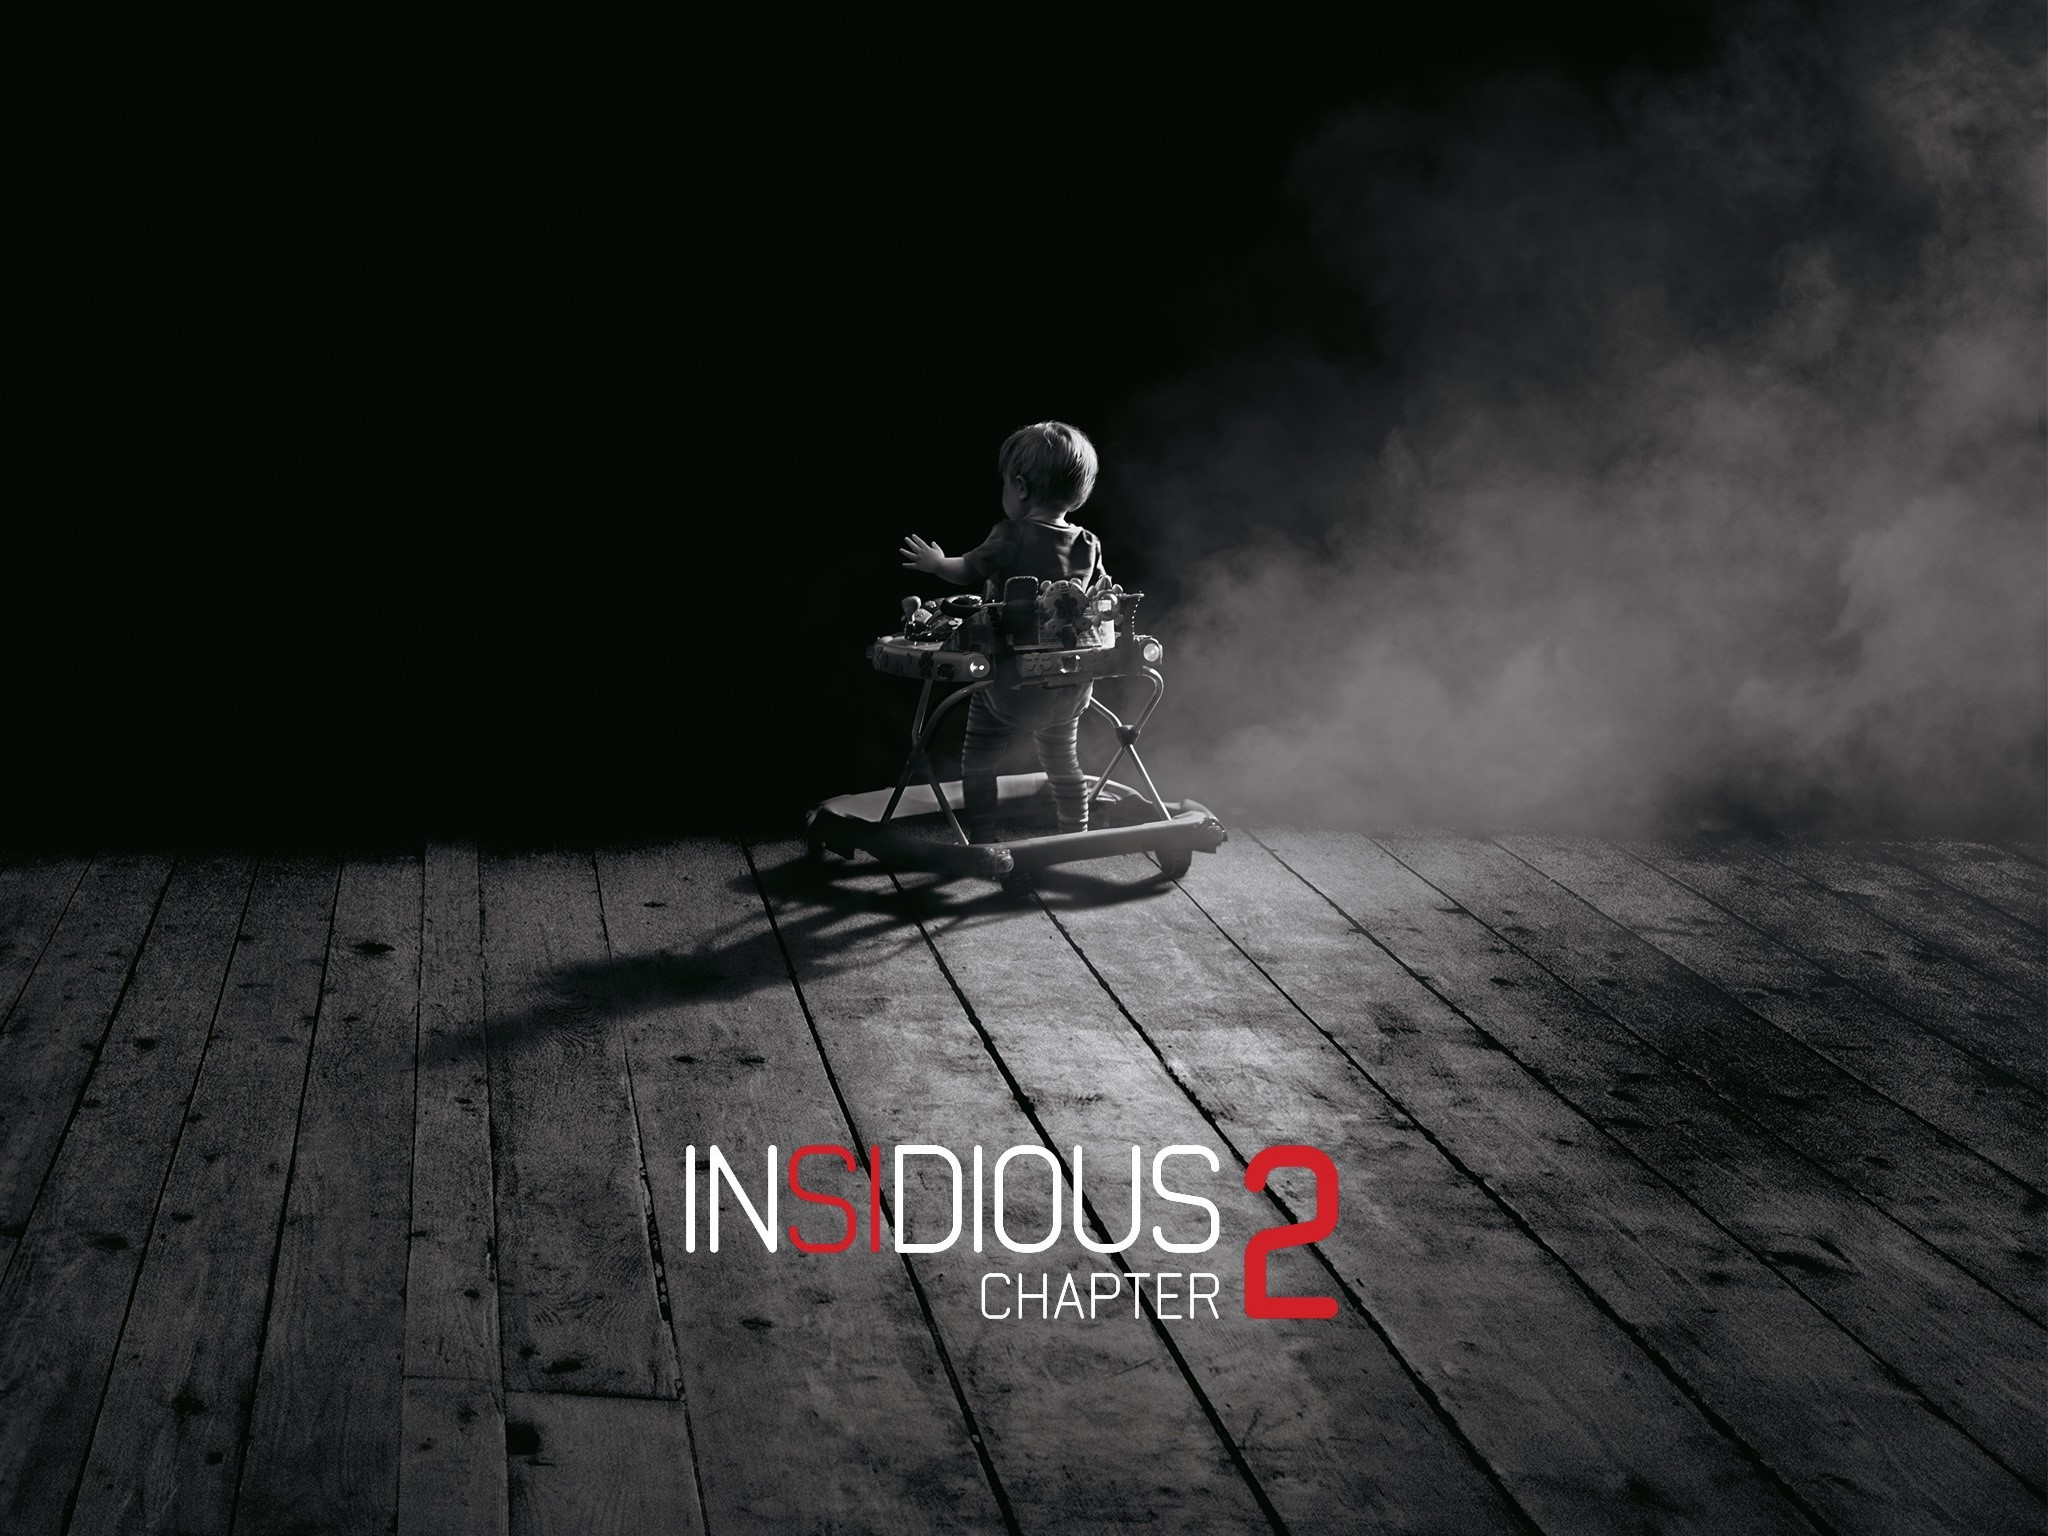 Wallpaper Insidious Chapter 2